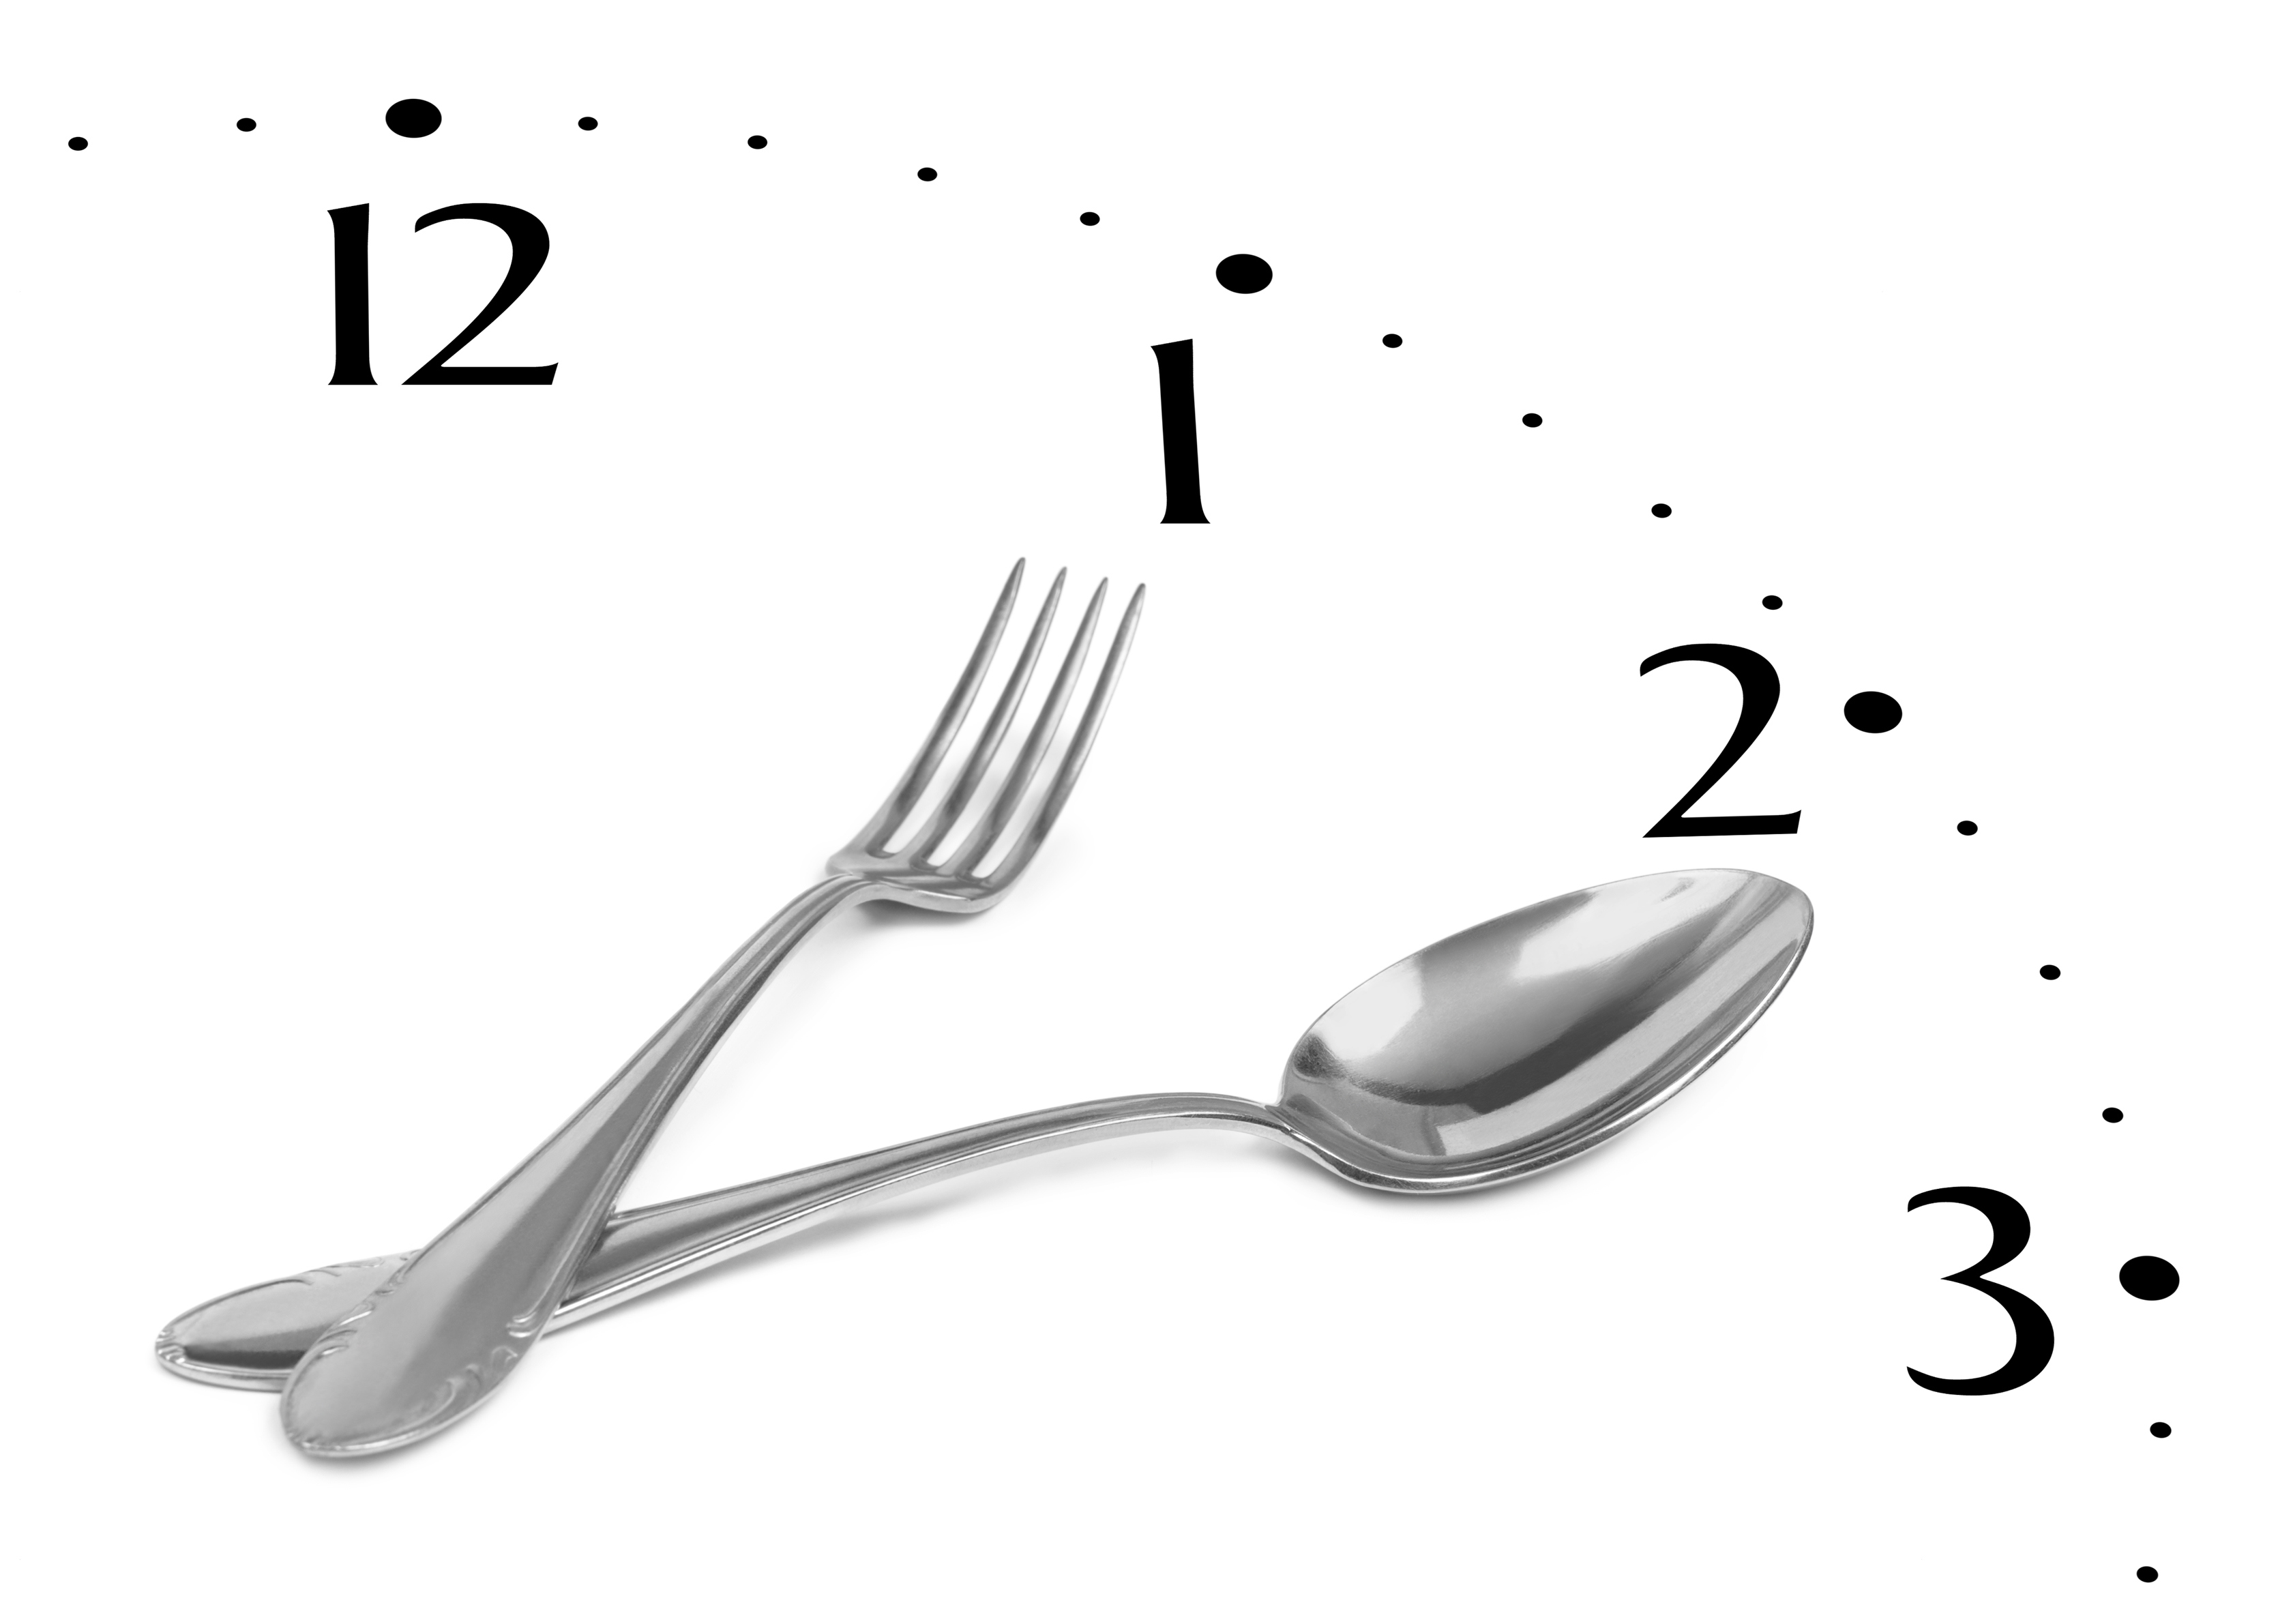 Clock made of fork and spoon